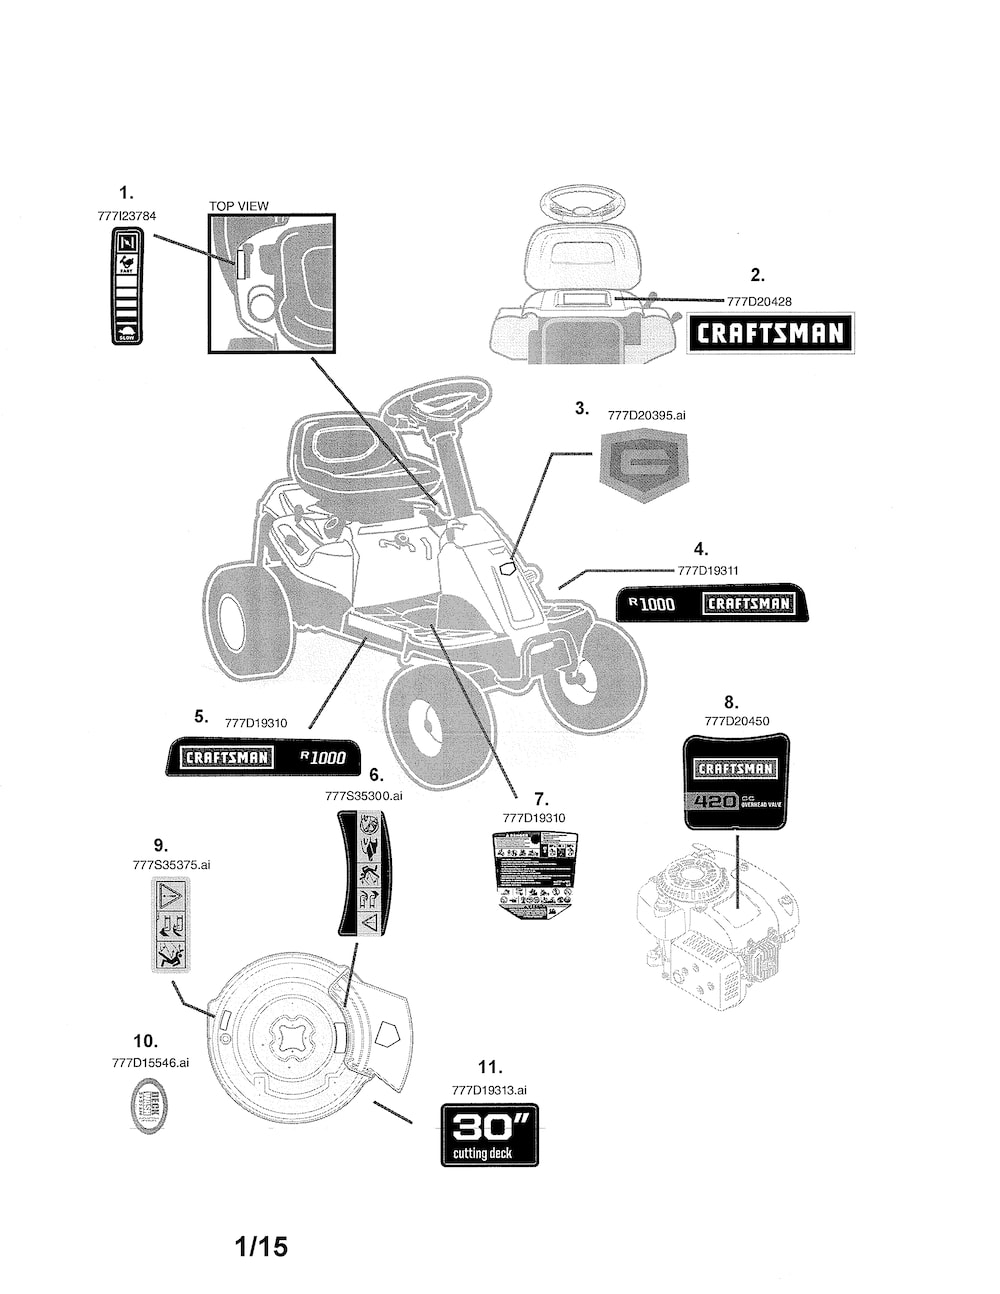 Wiring Diagram For Predator 670 in addition Predator 212cc Engine Wiring Diagram likewise Craftsman 4200 Generator Parts moreover Engine Assembly 1p61p0 further 00003. on 420cc engine diagram